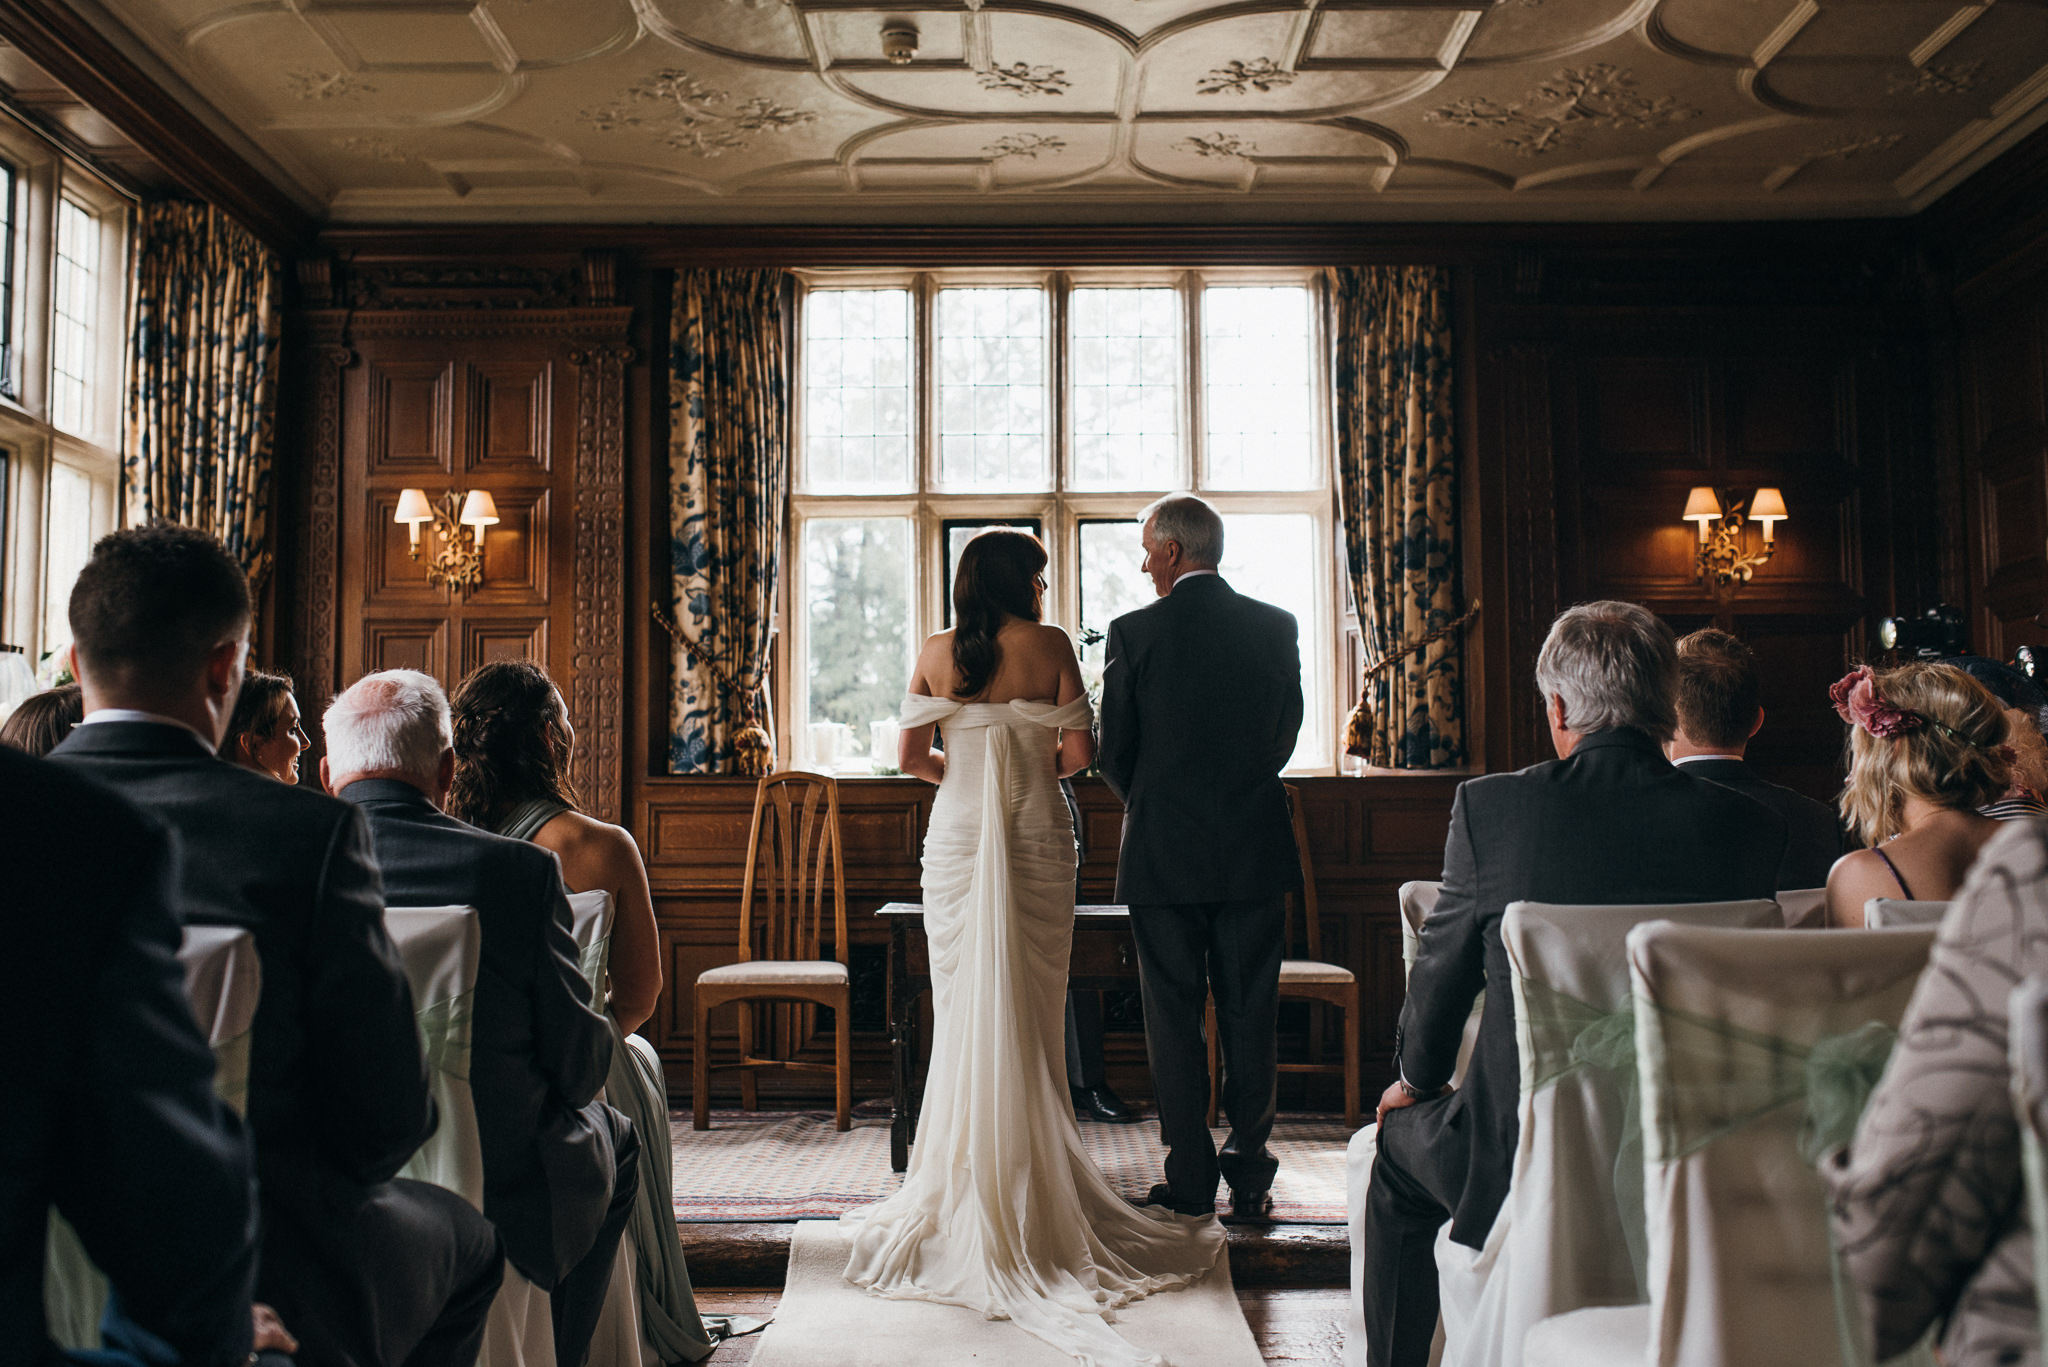 Gravetye Manor wedding ceremony